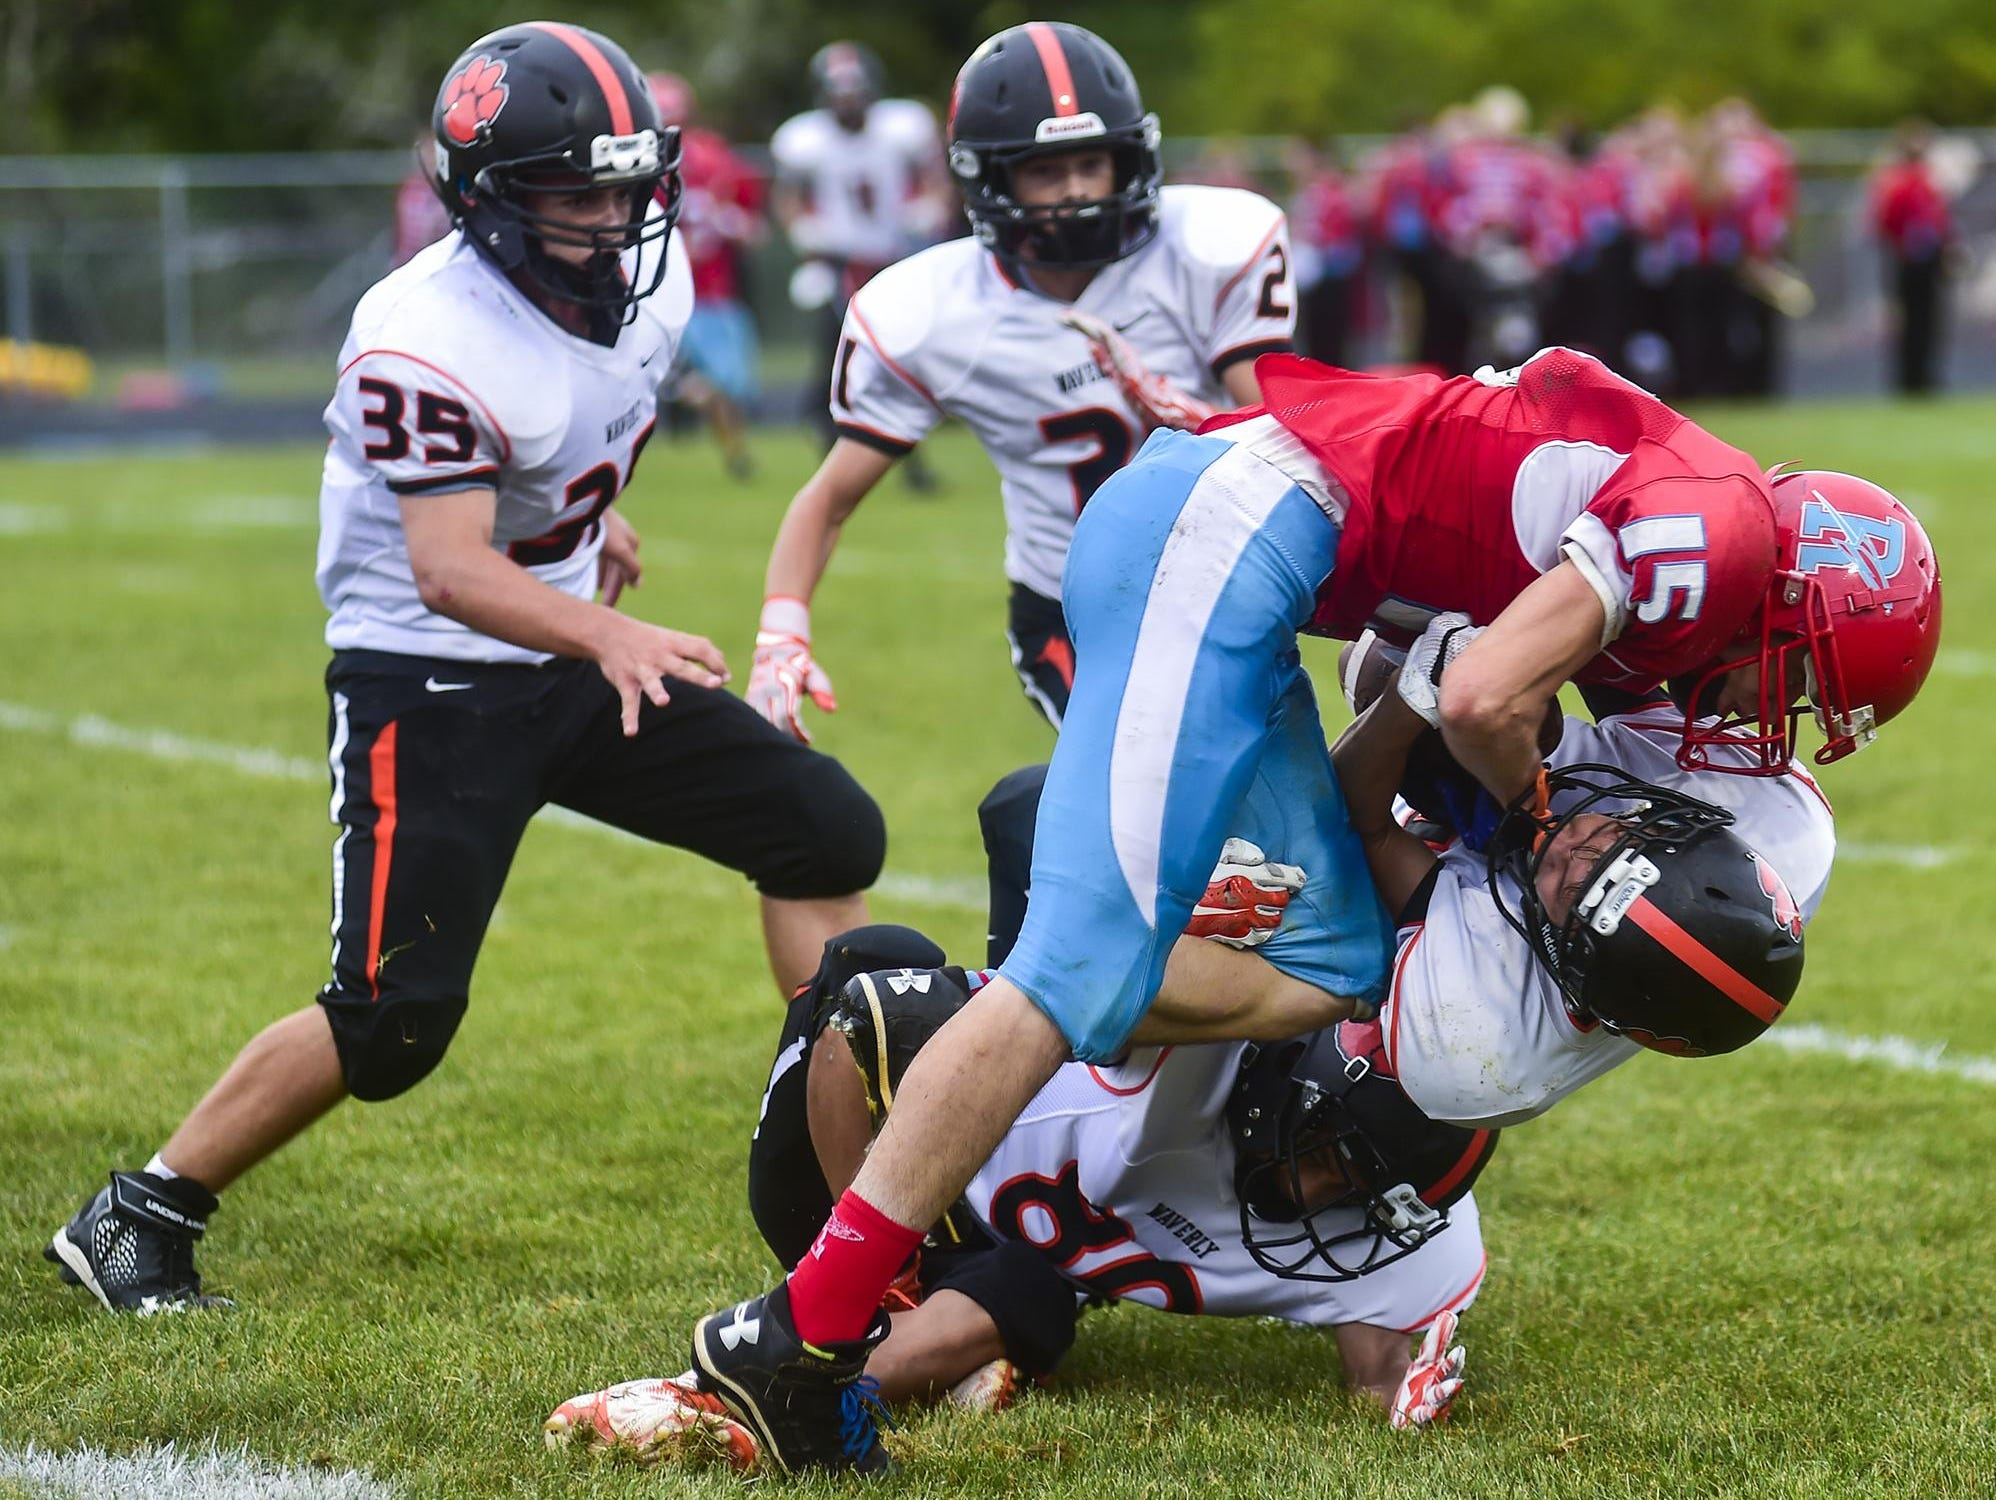 Ridgedale's Alex Brown is taken down by Waverly players as he attempts to drive the ball downfield during the Ridgedale vs. Waverly football game on Saturday.